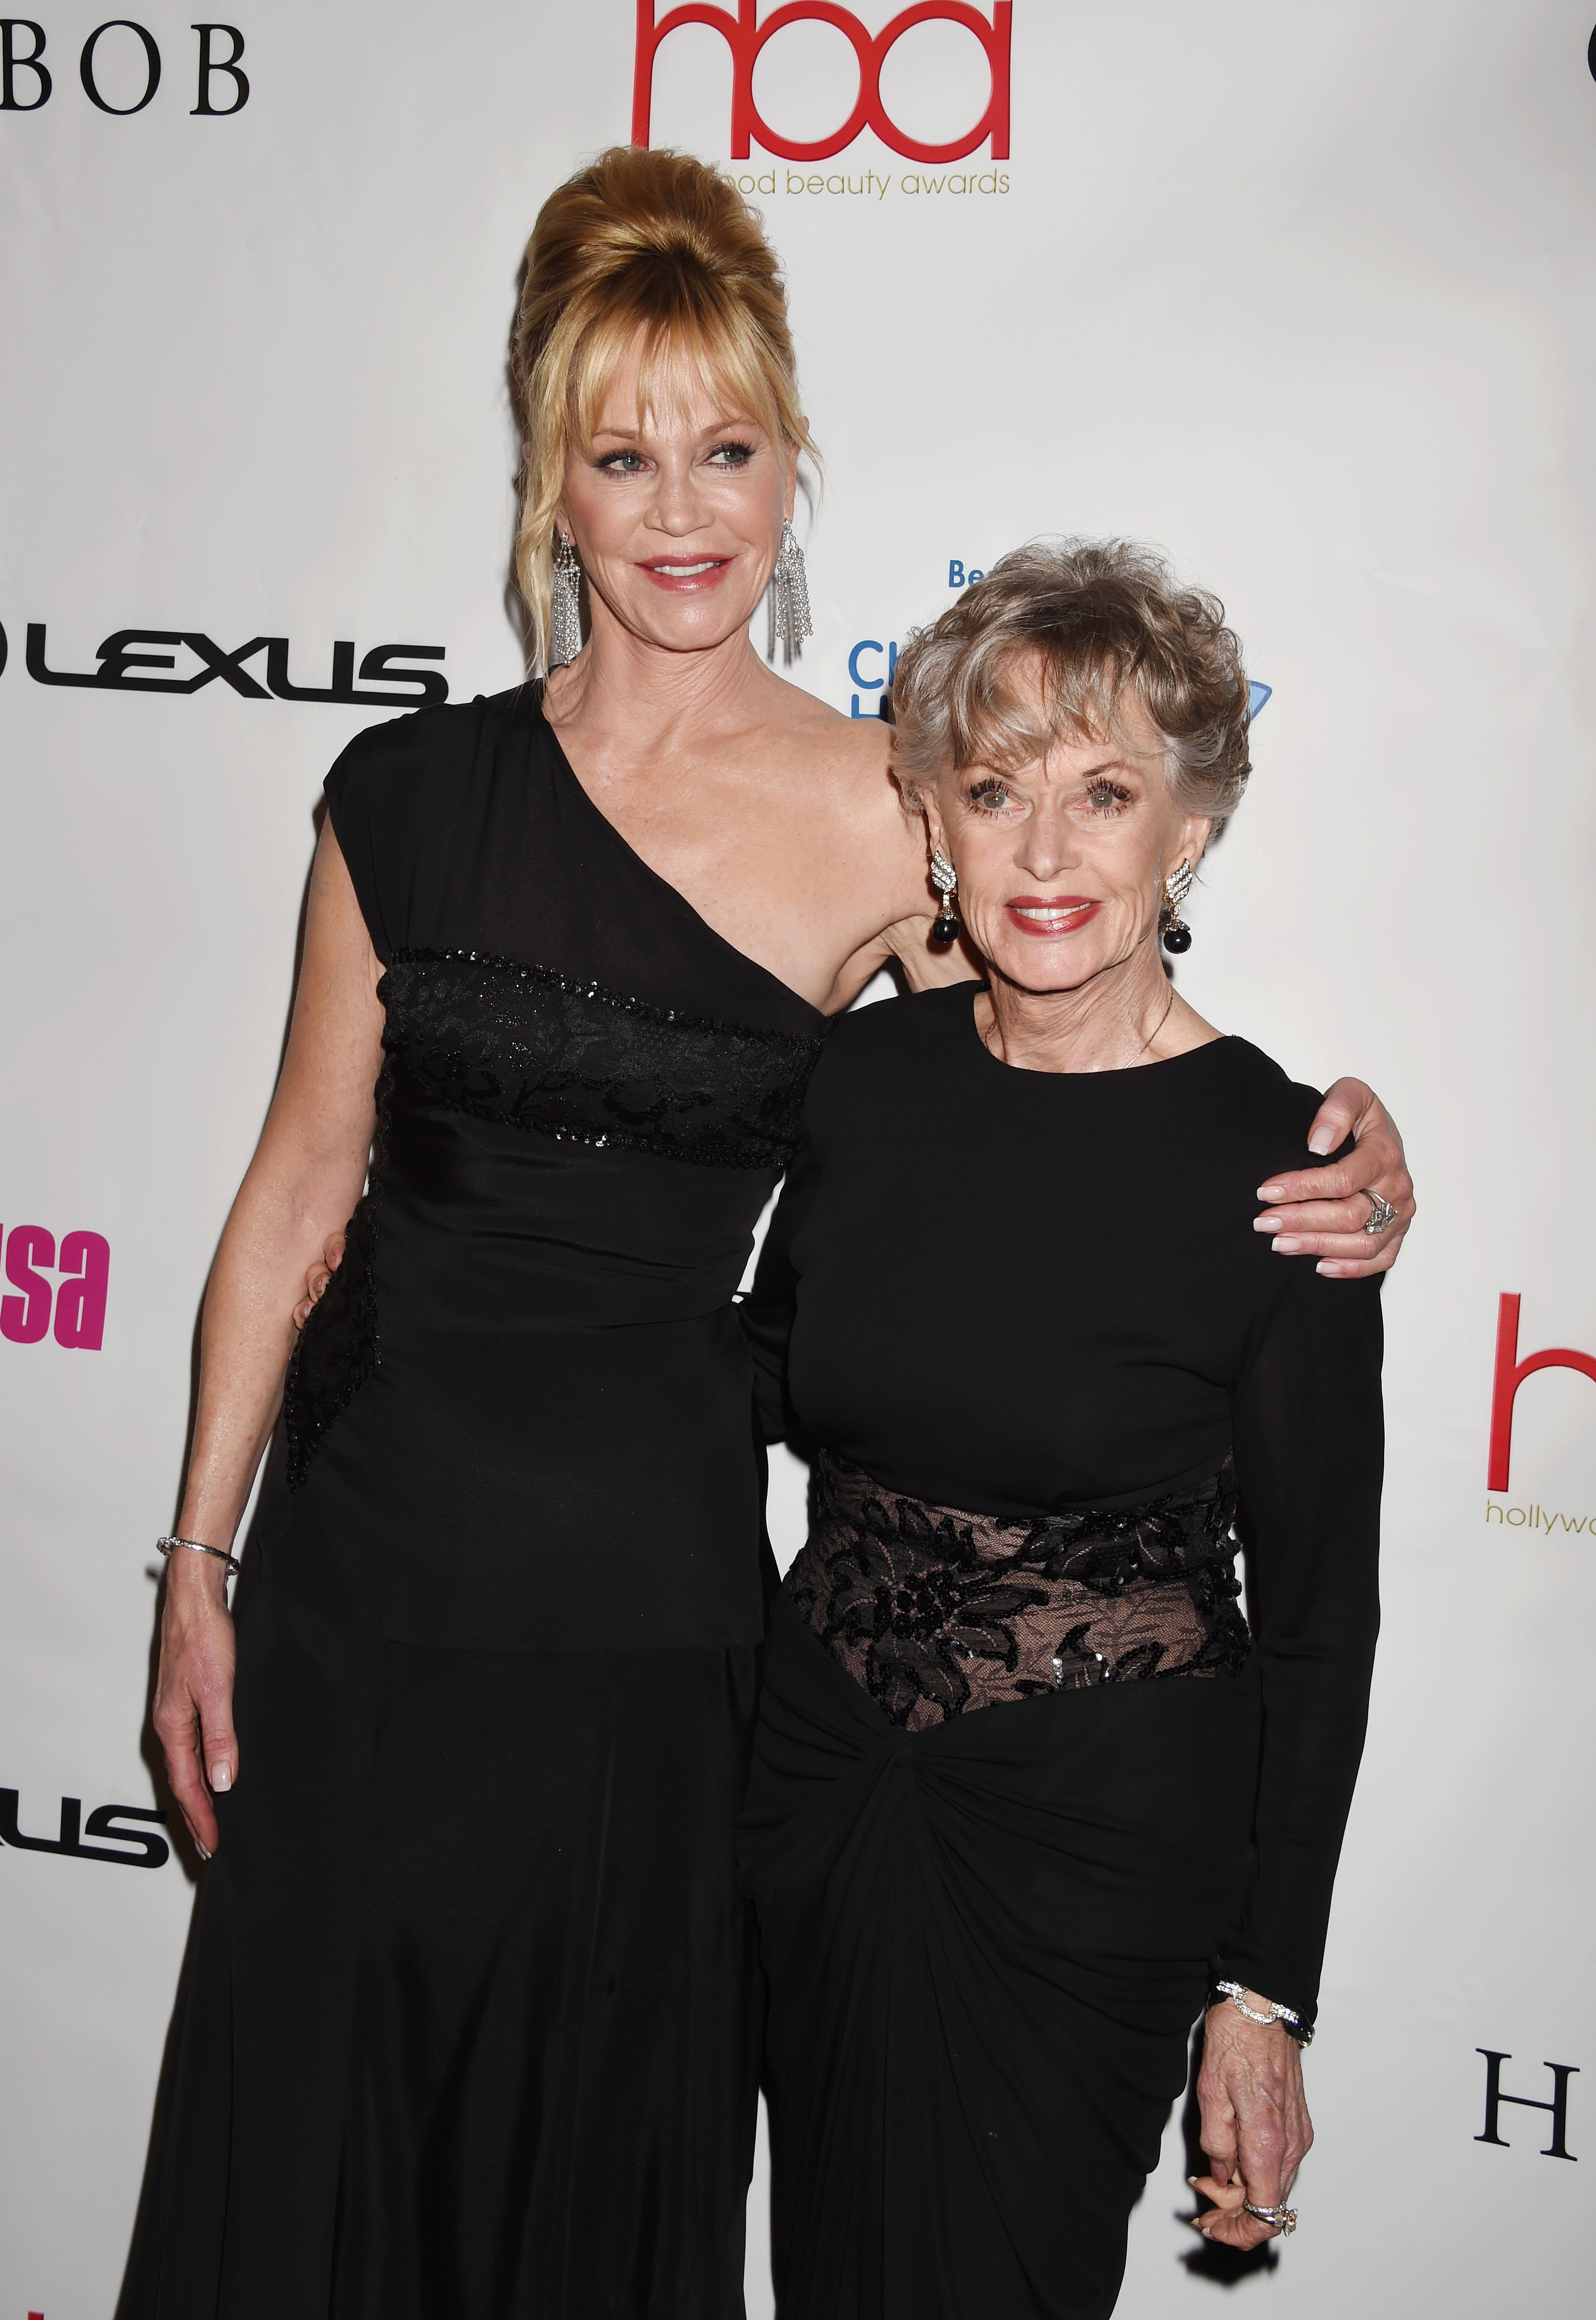 Actress Melanie Griffith and mother actress Tippi Hedren attend the 2nd Annual Hollywood Beauty Awards benefiting Children's Hospital Los Angeles at Avalon Hollywood on February 21, 2016 |Photo: Getty Images